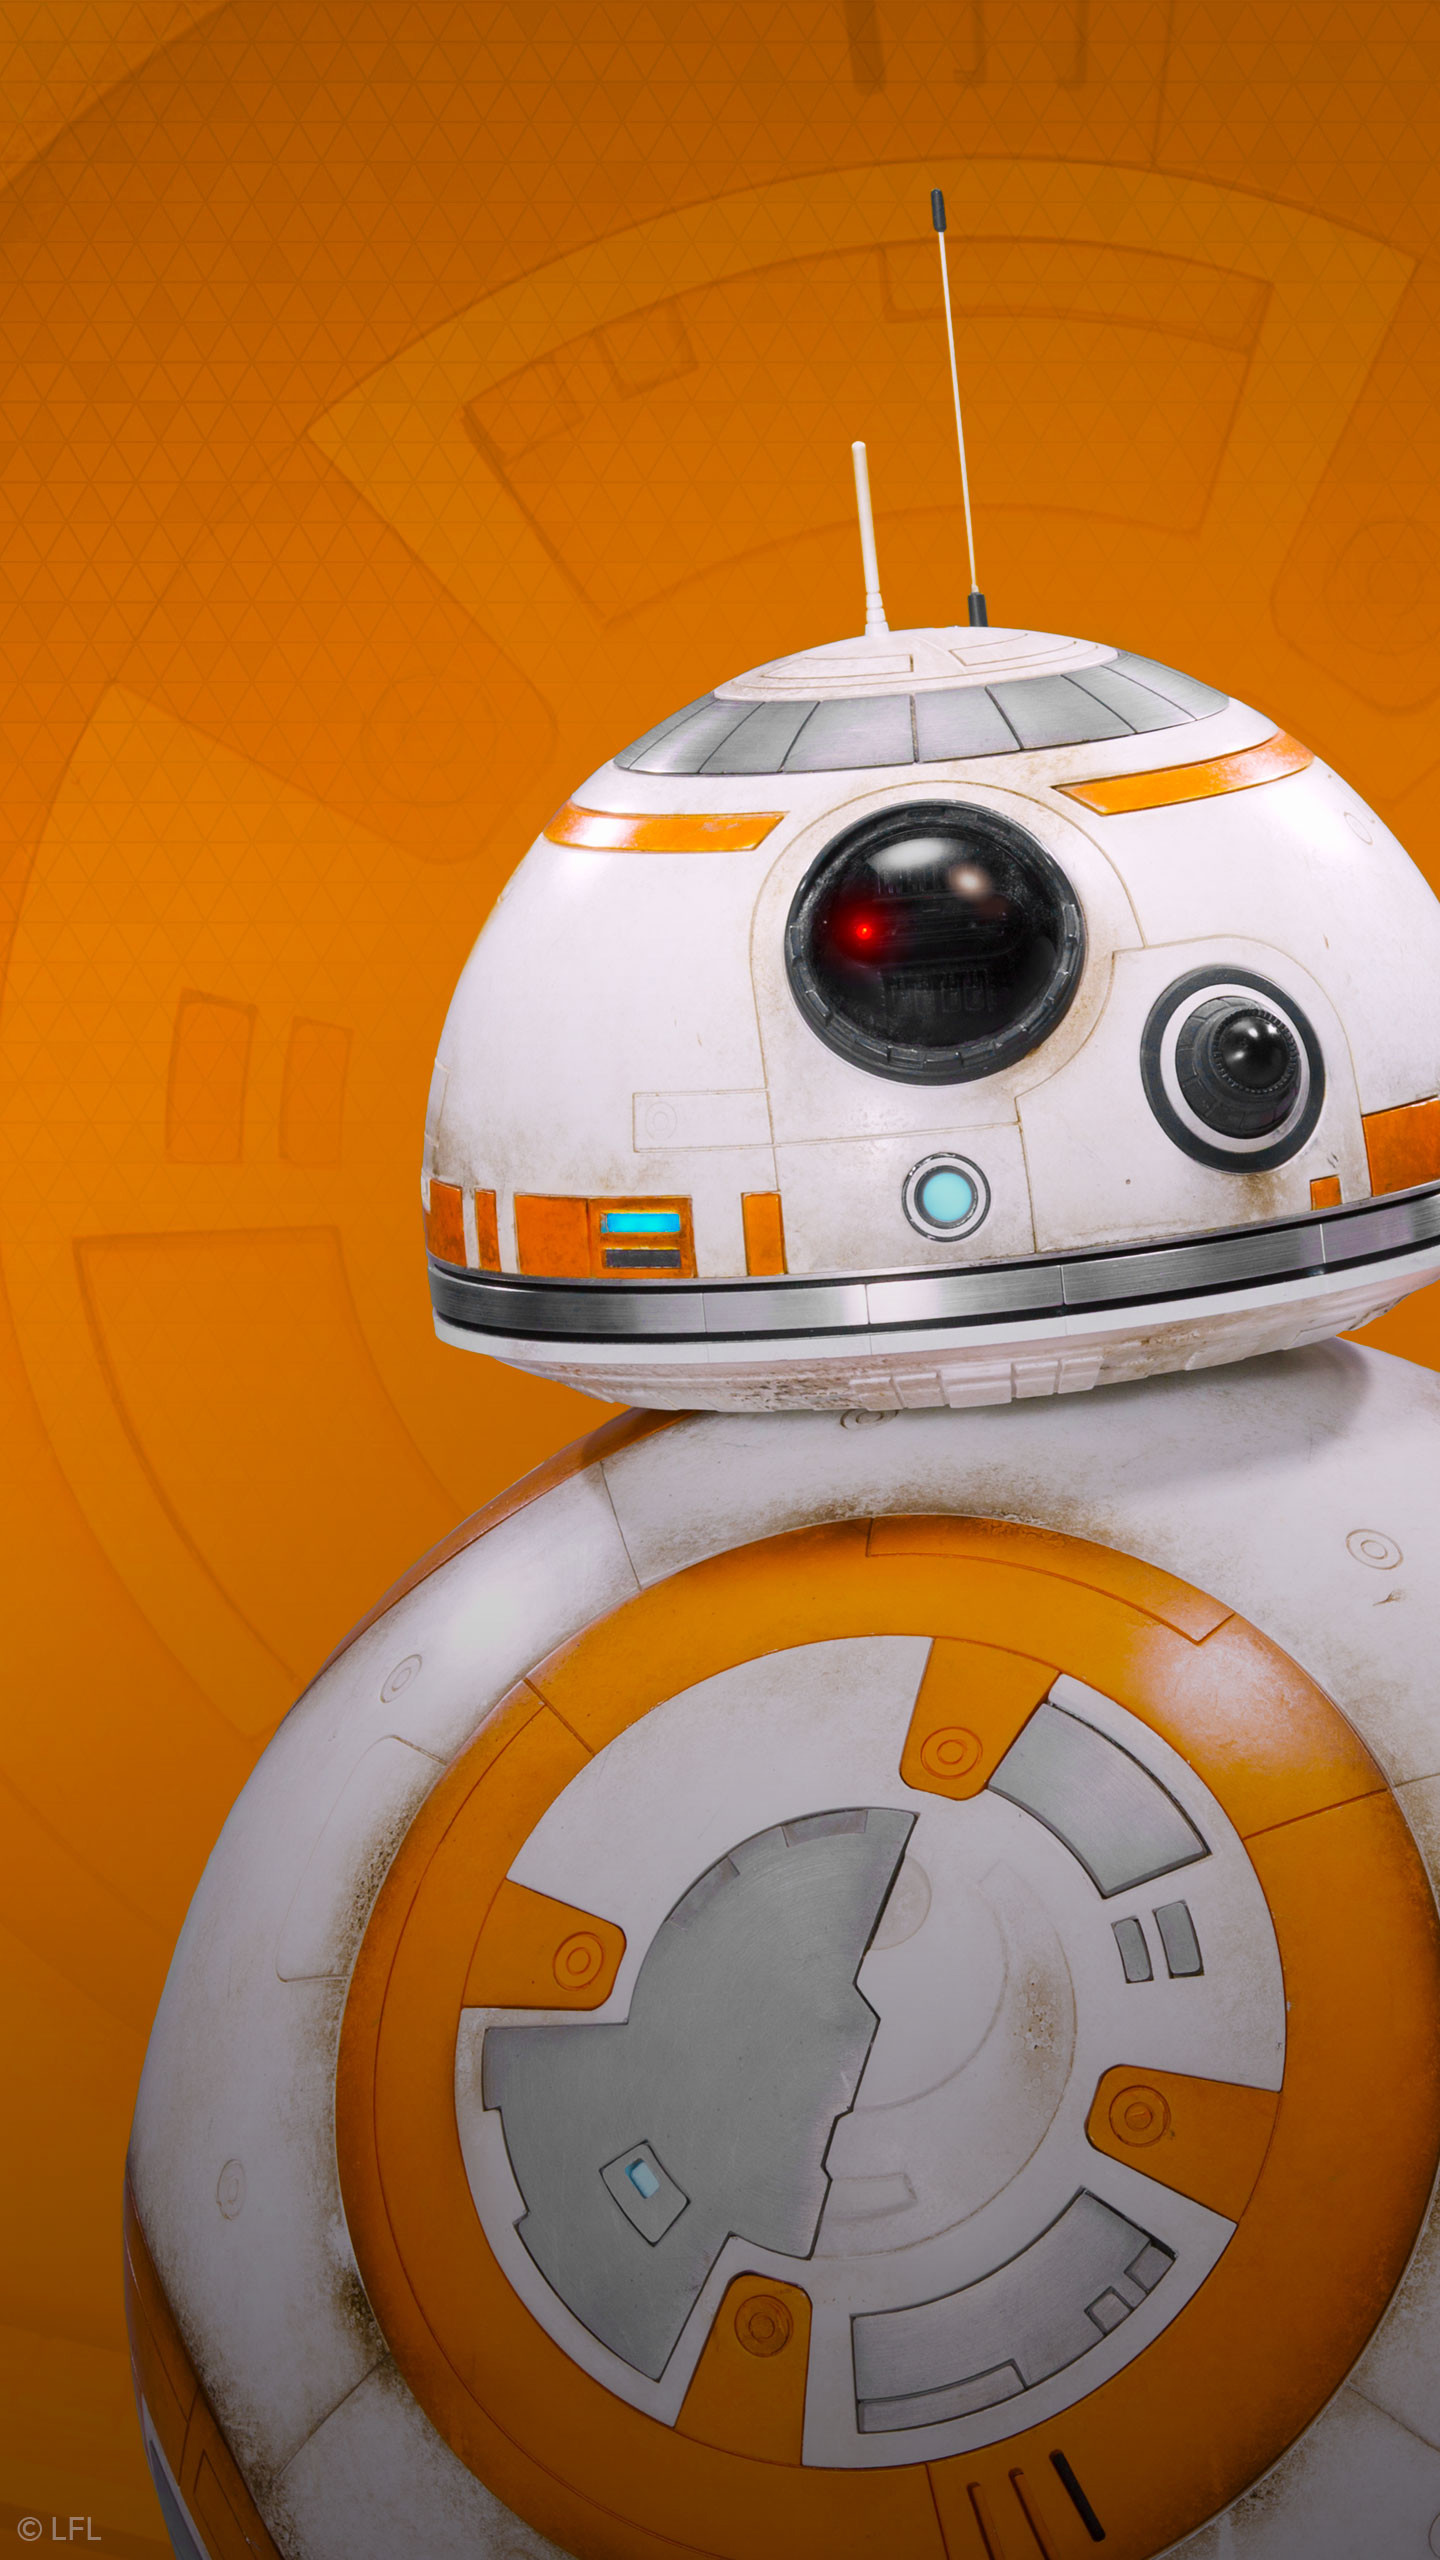 Star Wars iPhone Wallpaper Bb8 (69+ images)